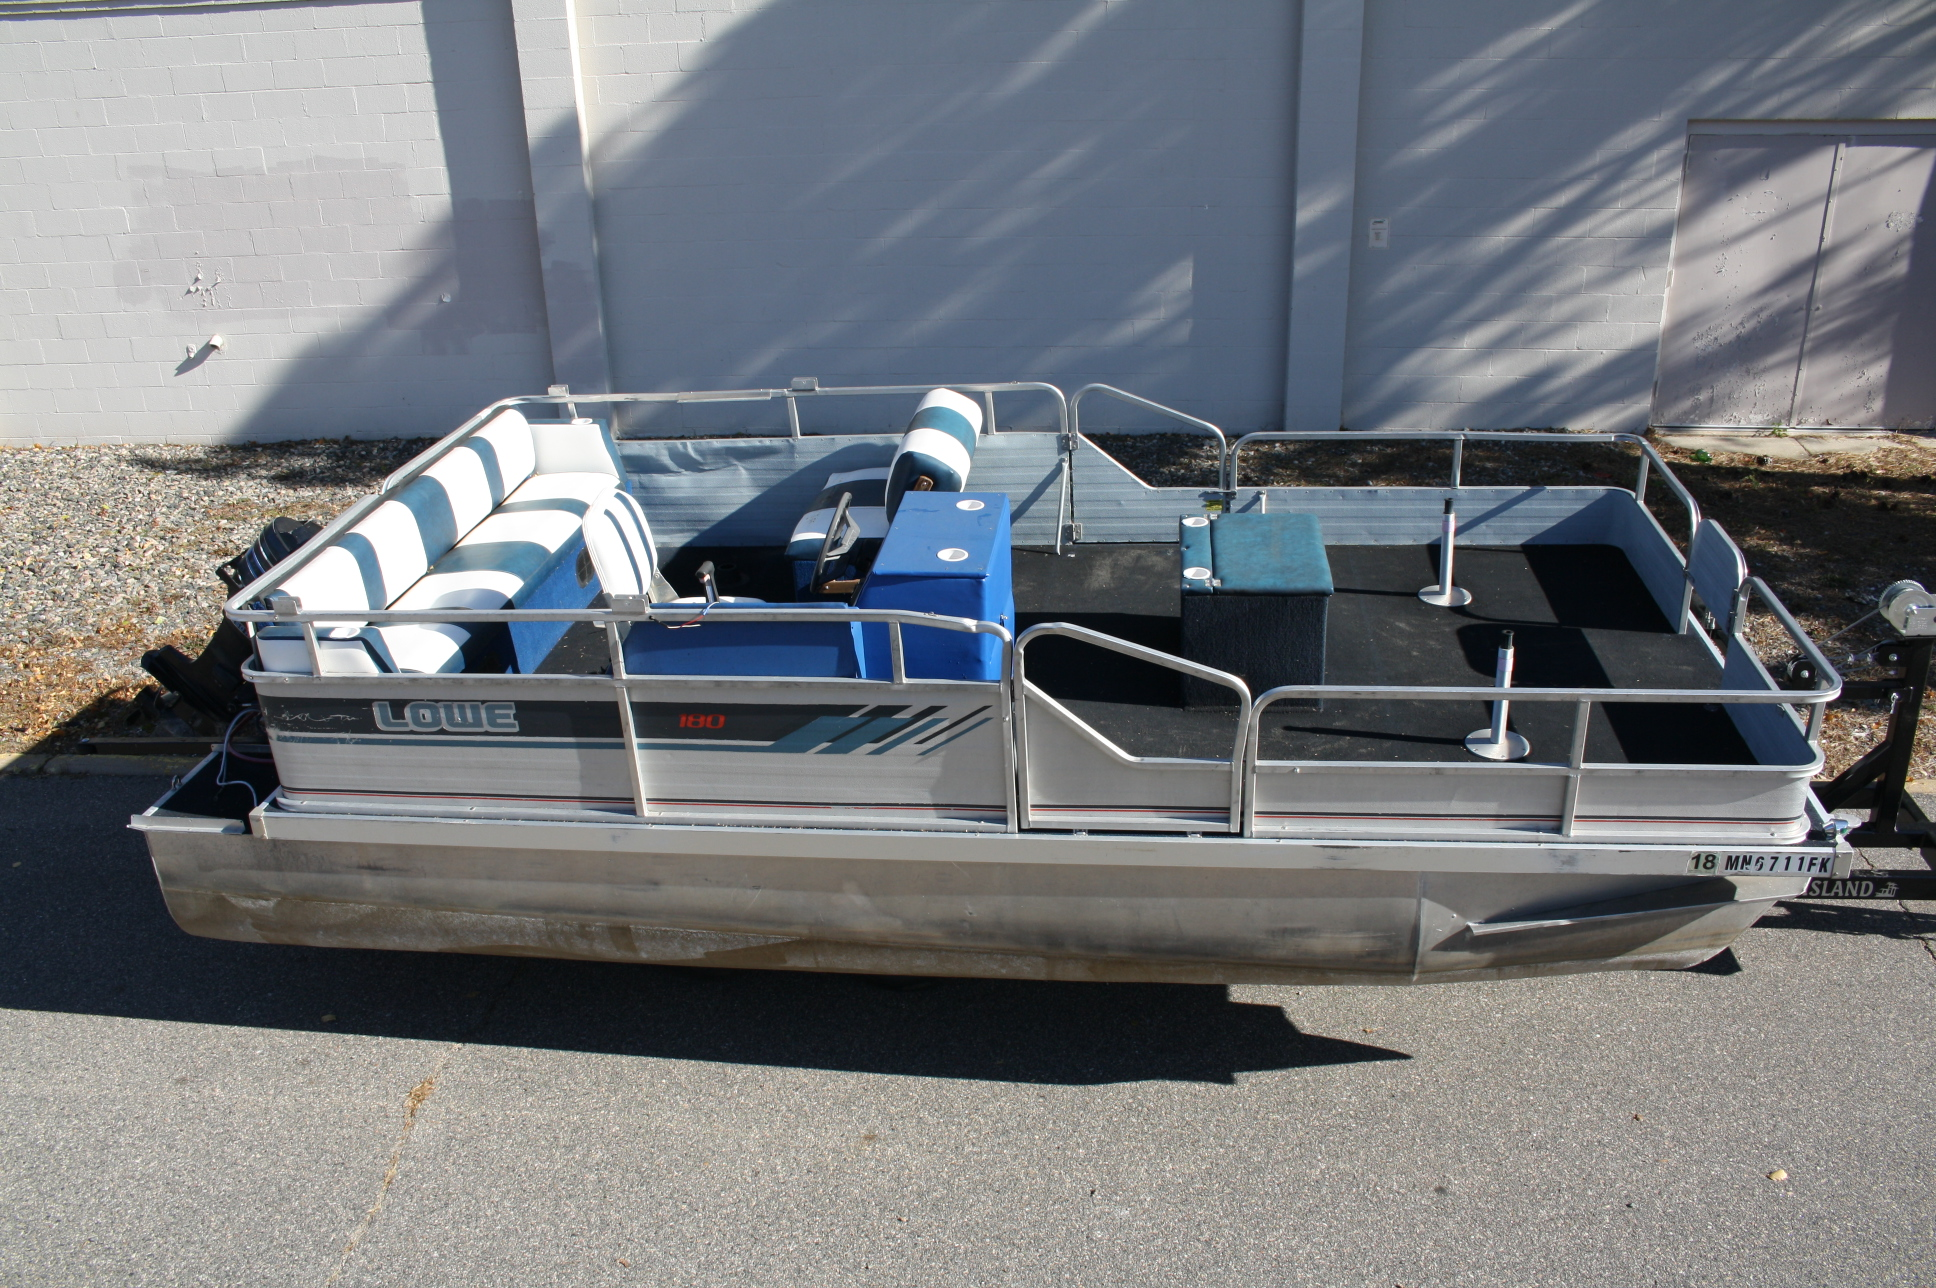 1988 18 Ft Lowe Fish Model With An Old 50 Hp Mercury 2